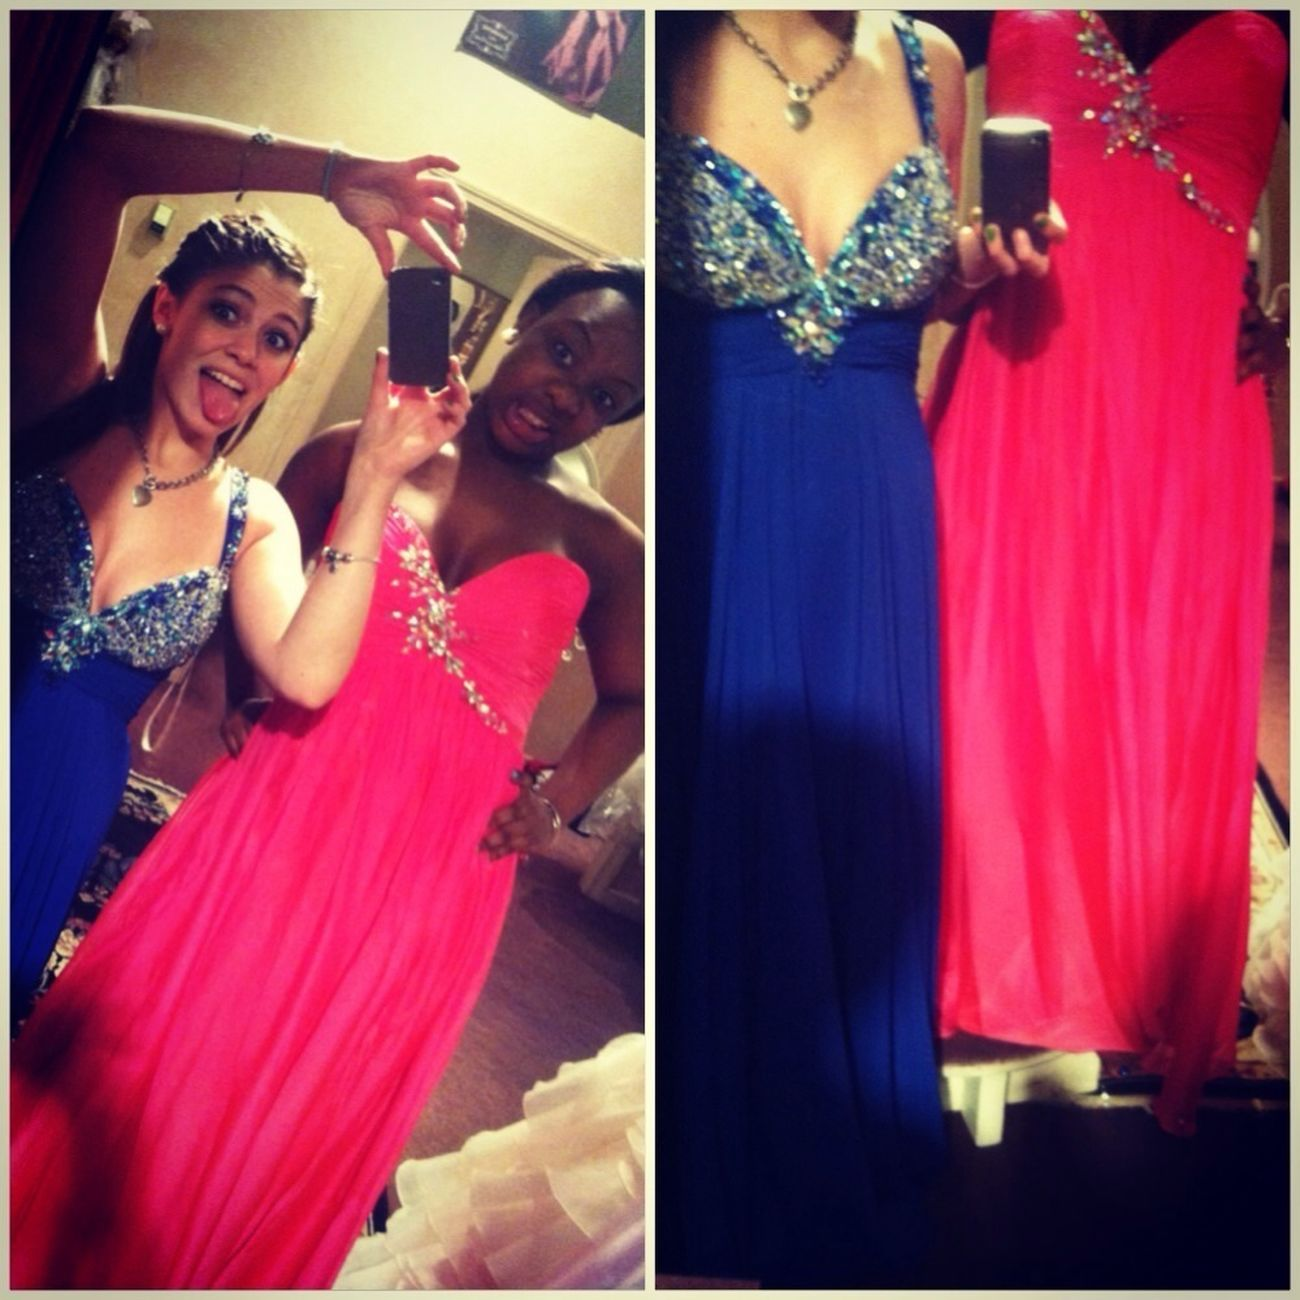 #girls #blue #pink #prom dresses #silly #faces